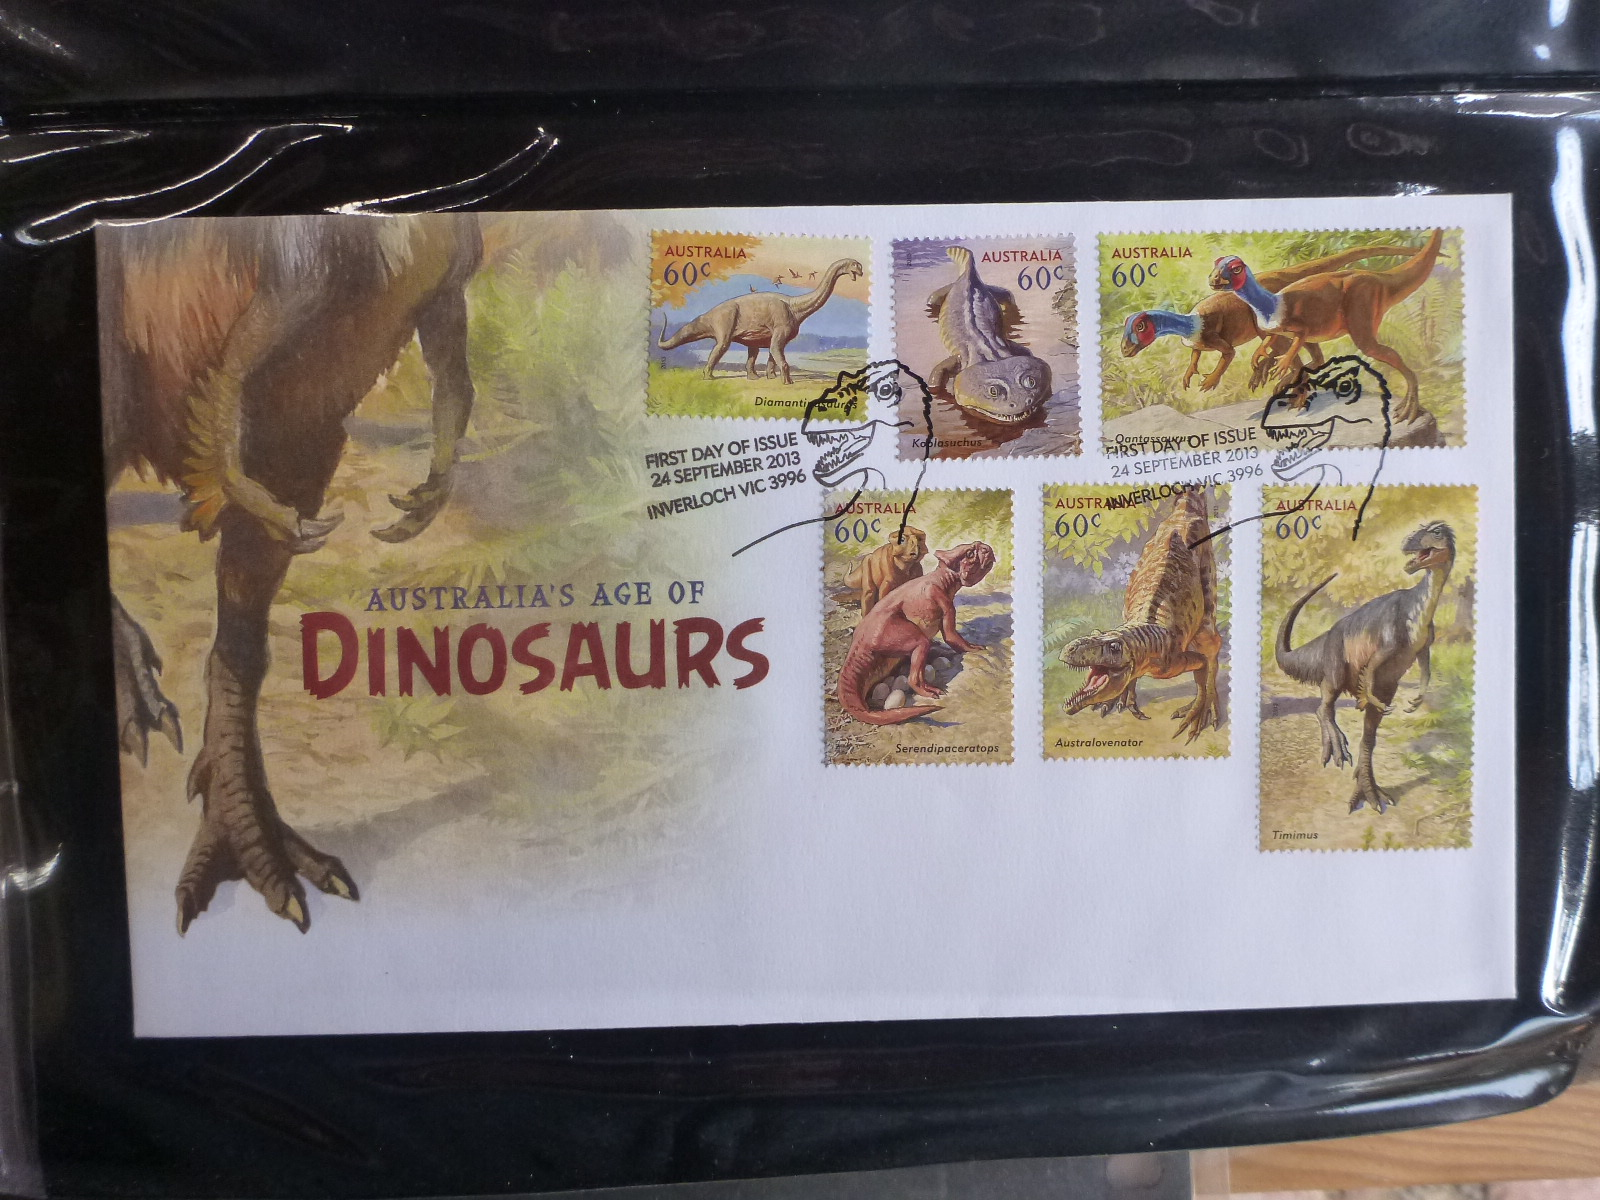 AUSTRALIA-2013-AGE-OF-DINOSAURS-SET-6-STAMPS-FDC-FIRST-DAY-COVER